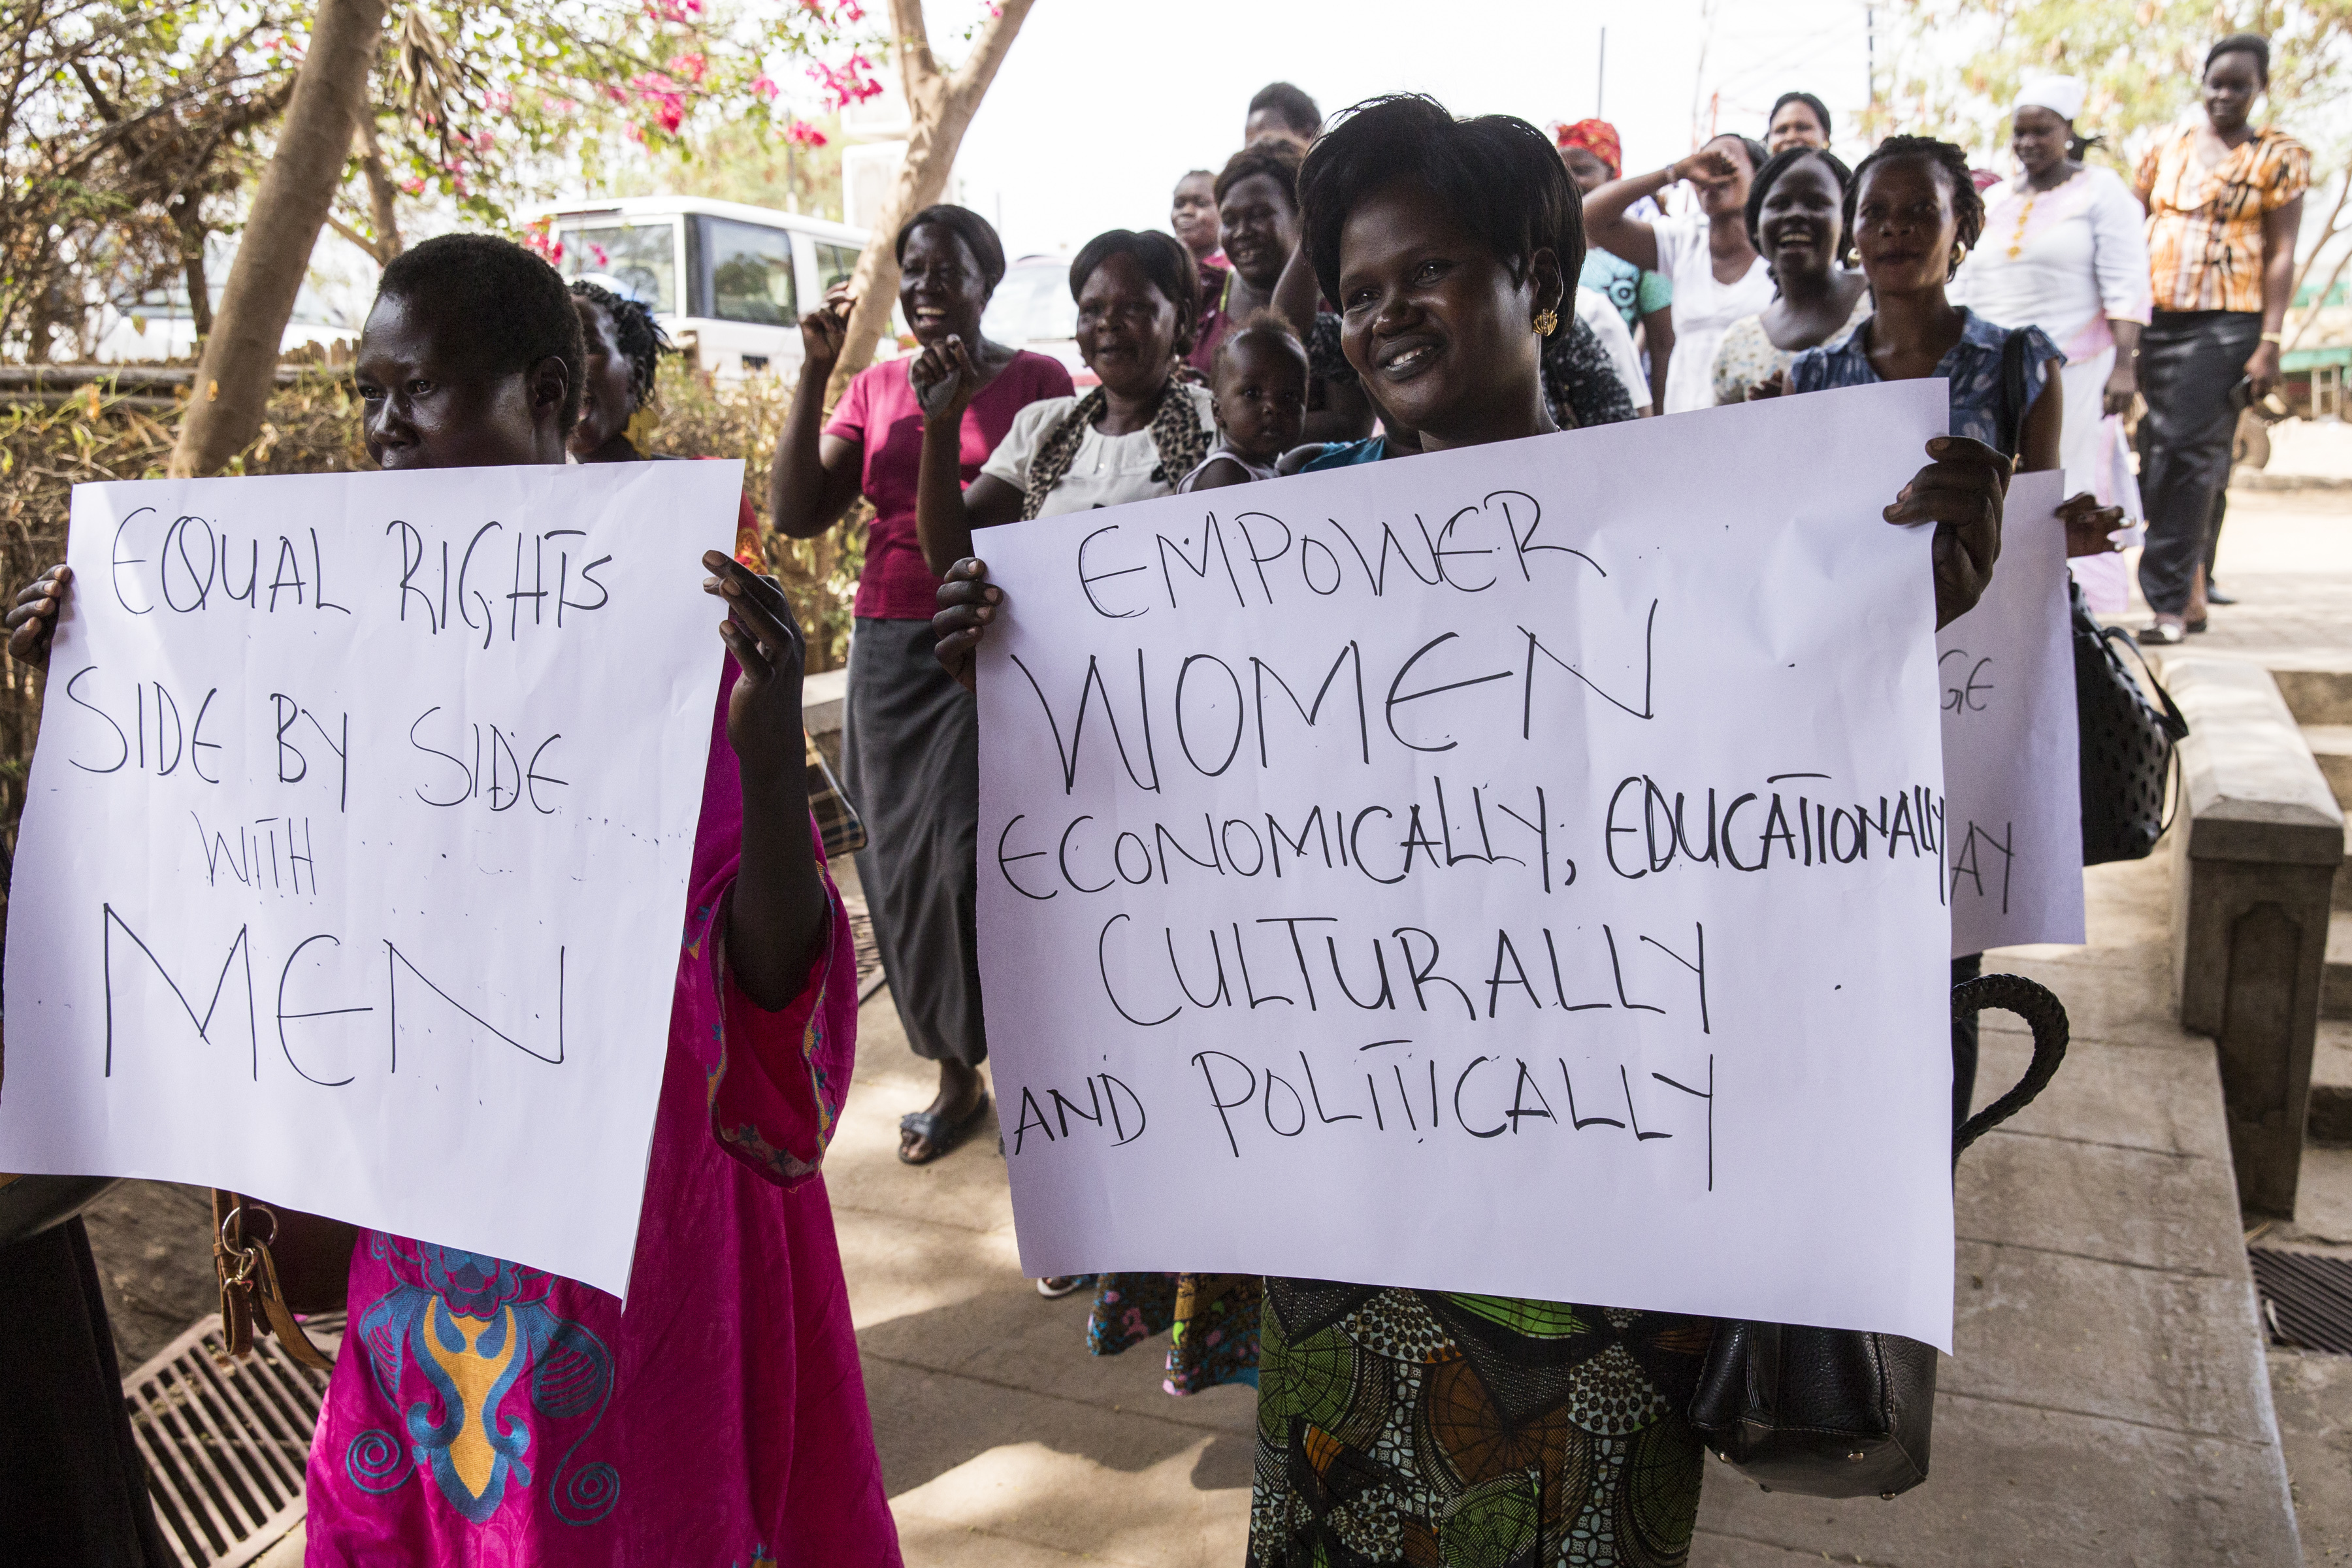 """International Women's Day celebration in South Sudan, held at Nyakuron Cultural Centre. The event, organized by the Ministry of Gender, Child, and Social Welfare, was held under the local theme """"South Sudanese Pledge for Ending Child Marriage"""" and the global theme """"Pledge for Parity"""", which calls for 50/50 gender parity by the year 2030. Participants arrive in procession at the event."""